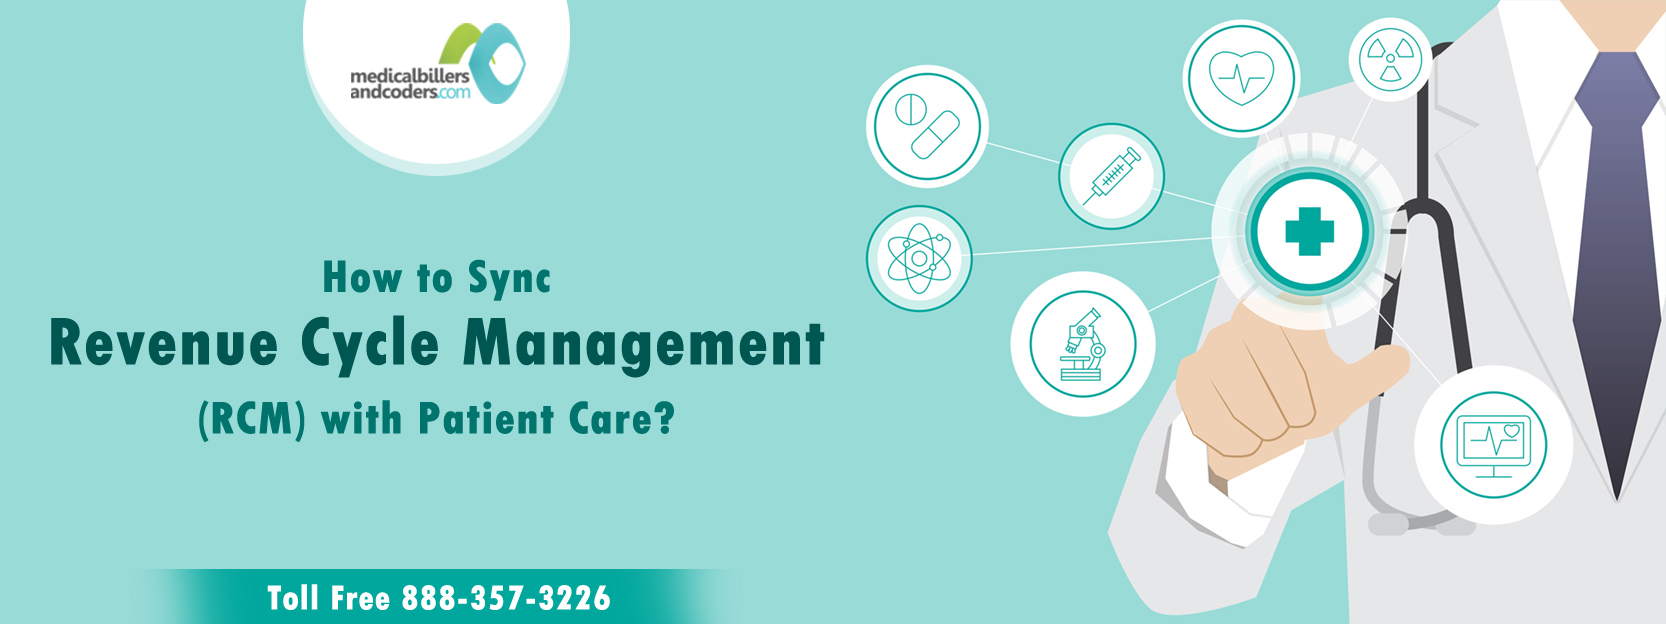 How to Sync Revenue Cycle Management (RCM) with Patient Care?